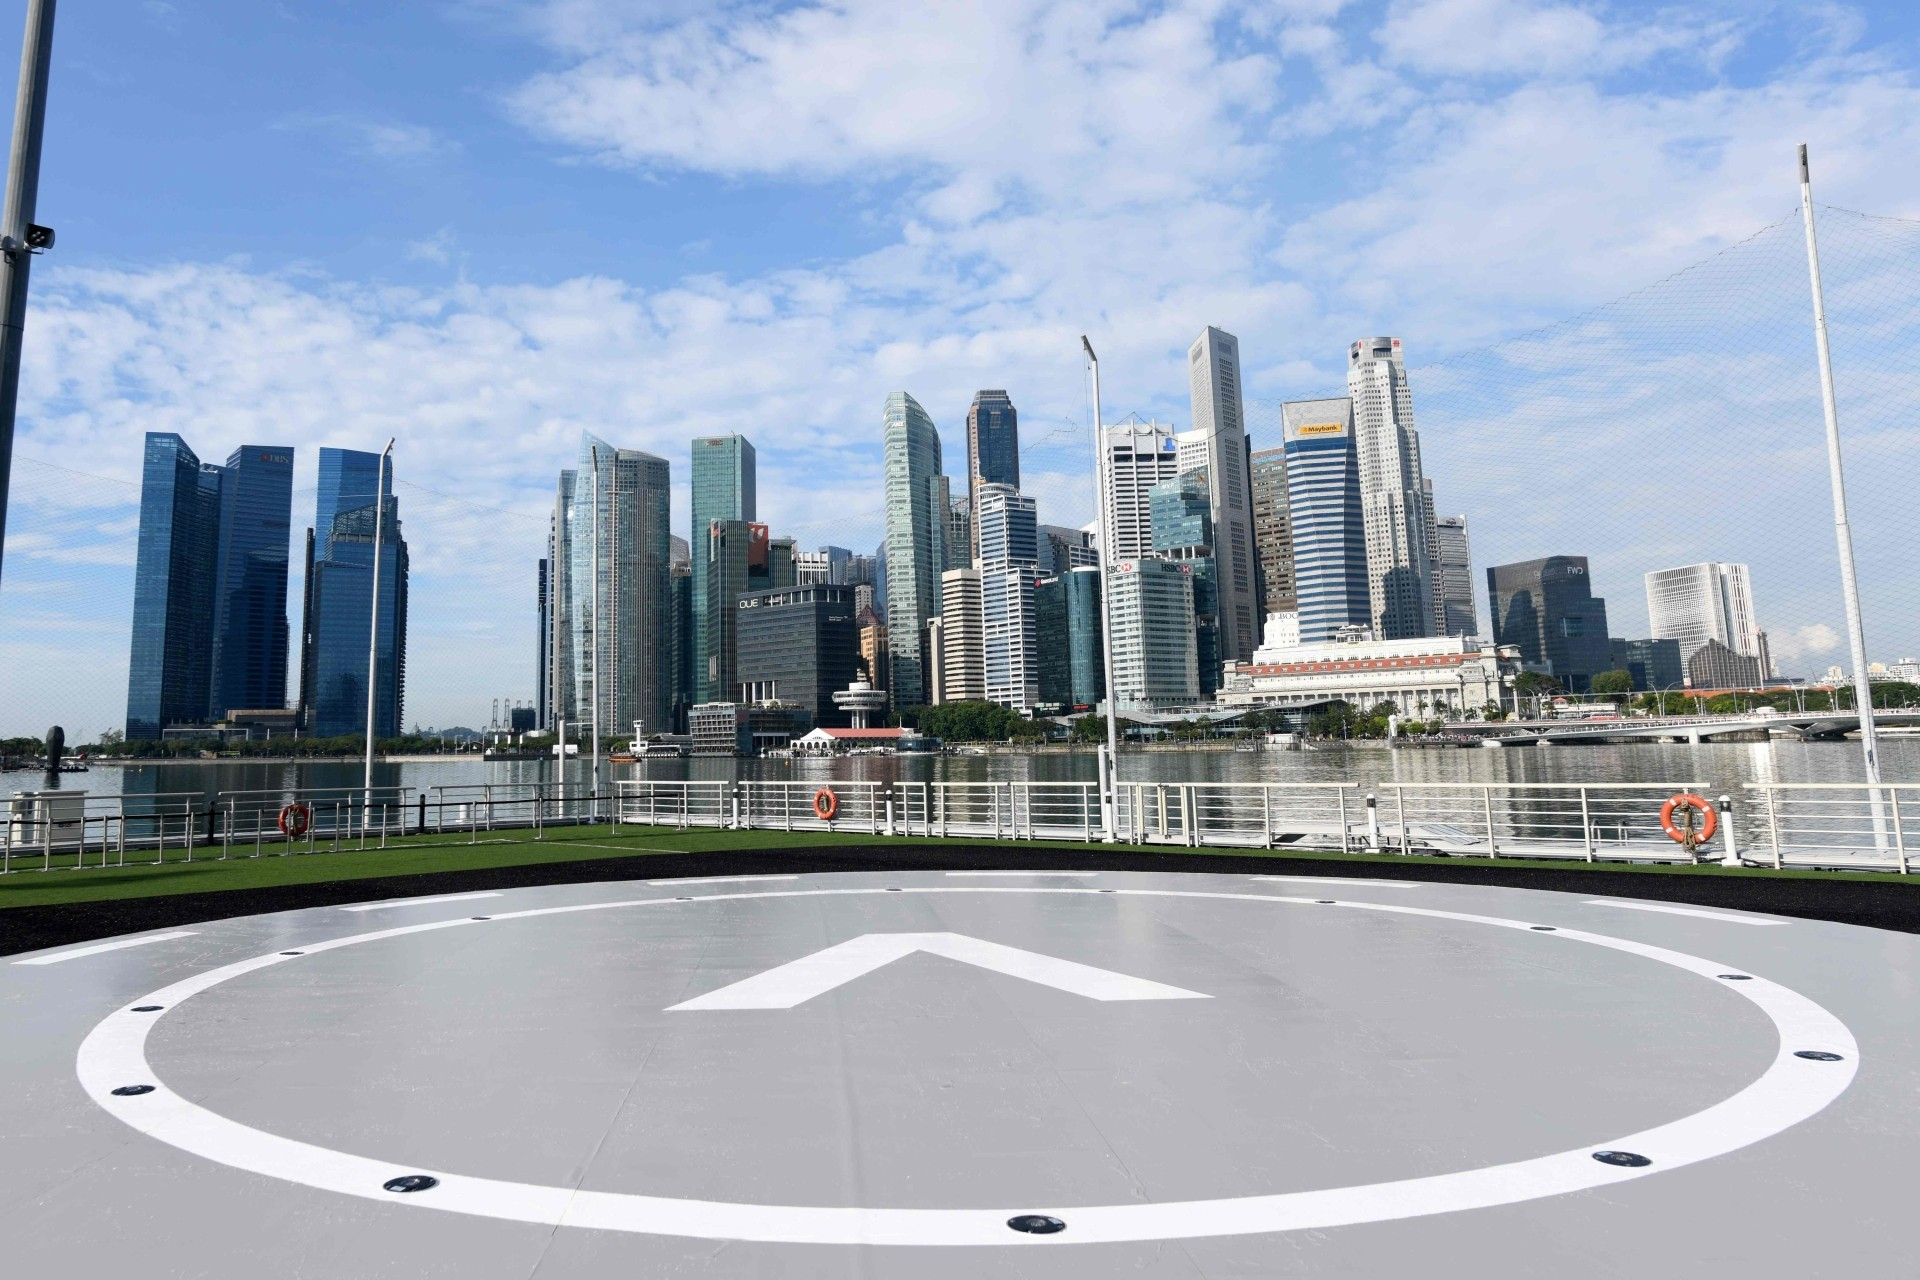 The VoloPort prototype launch pad is seen at Marina Bay against the city skyline where the Volocopter unmanned air taxi transport test flight took place in Singapore.